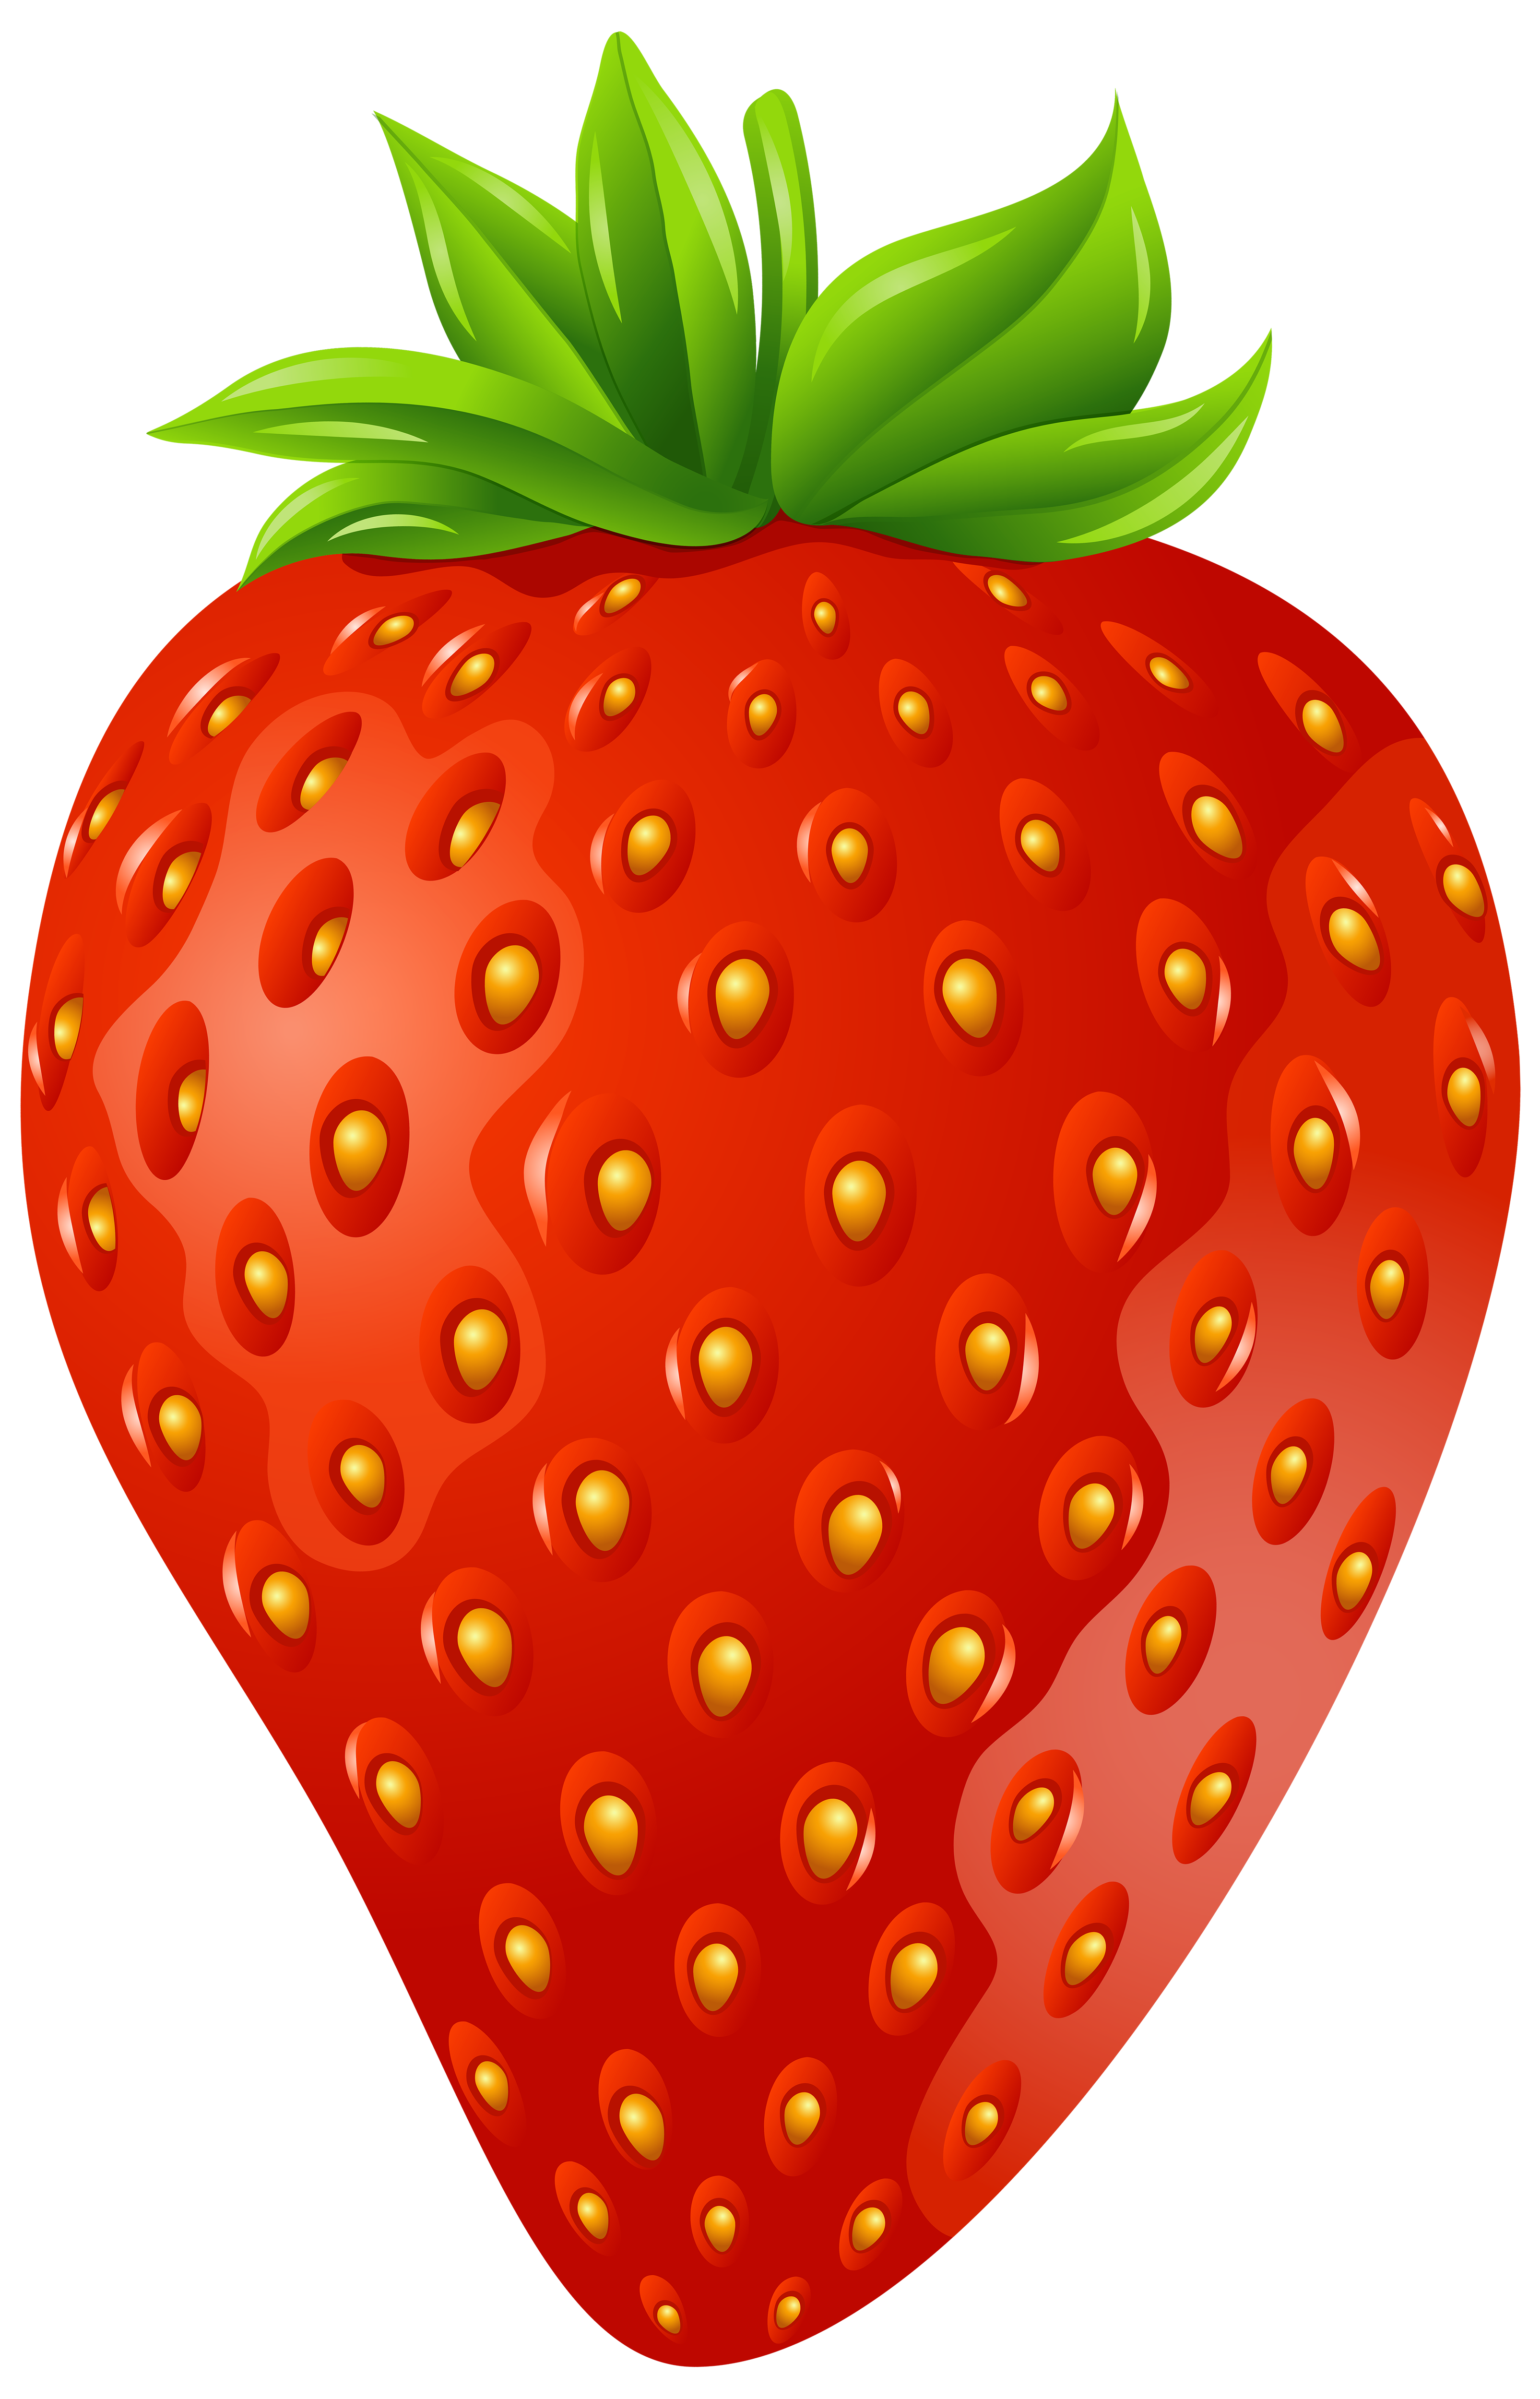 Strawberry PNG Clip Art Image.